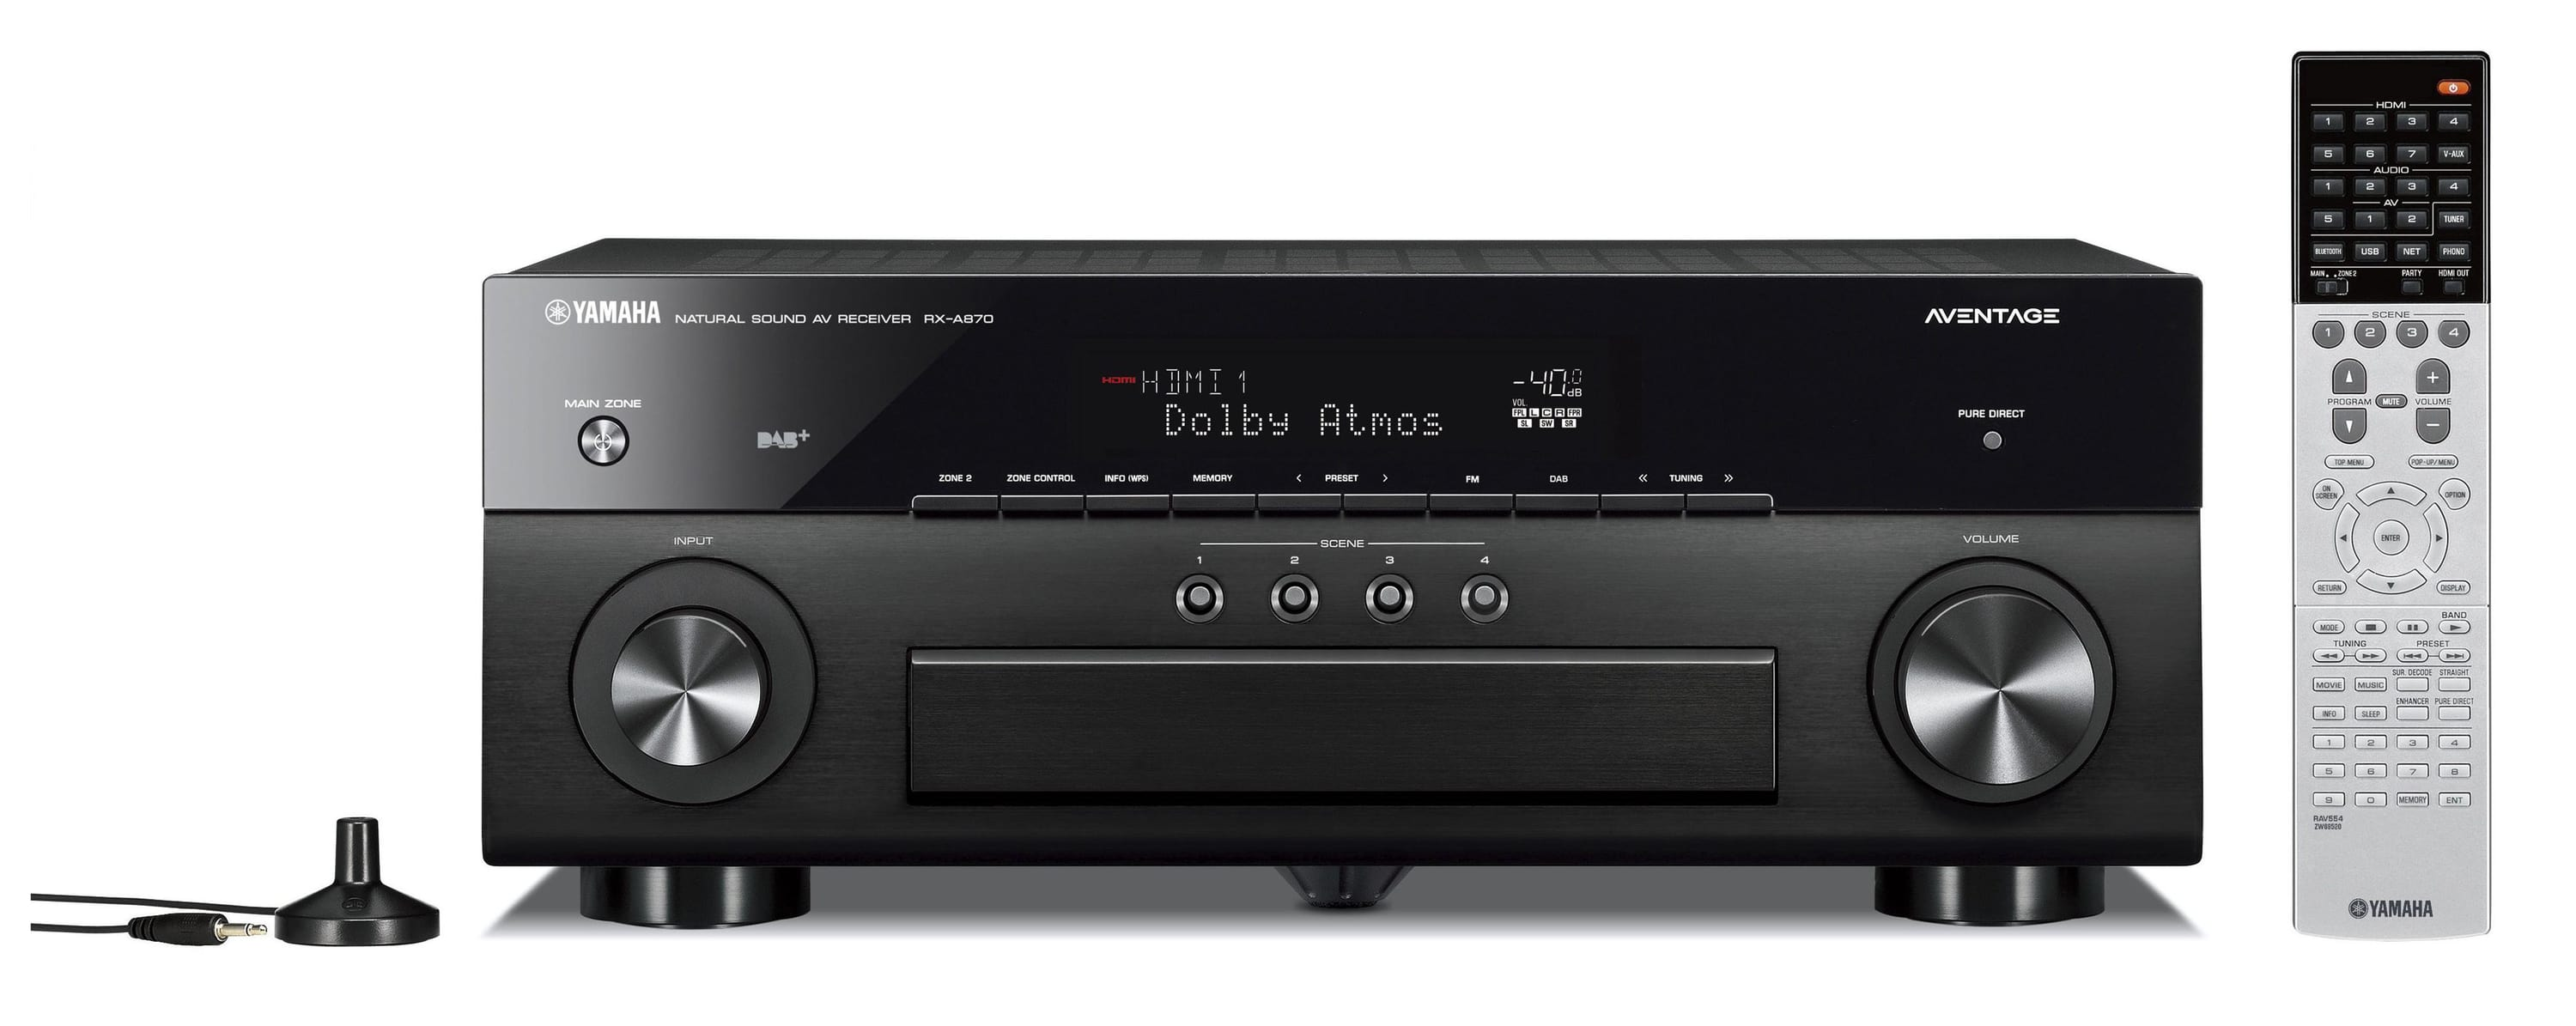 yamaha rx a870 7 2 kanal av receiver von expert technomarkt. Black Bedroom Furniture Sets. Home Design Ideas